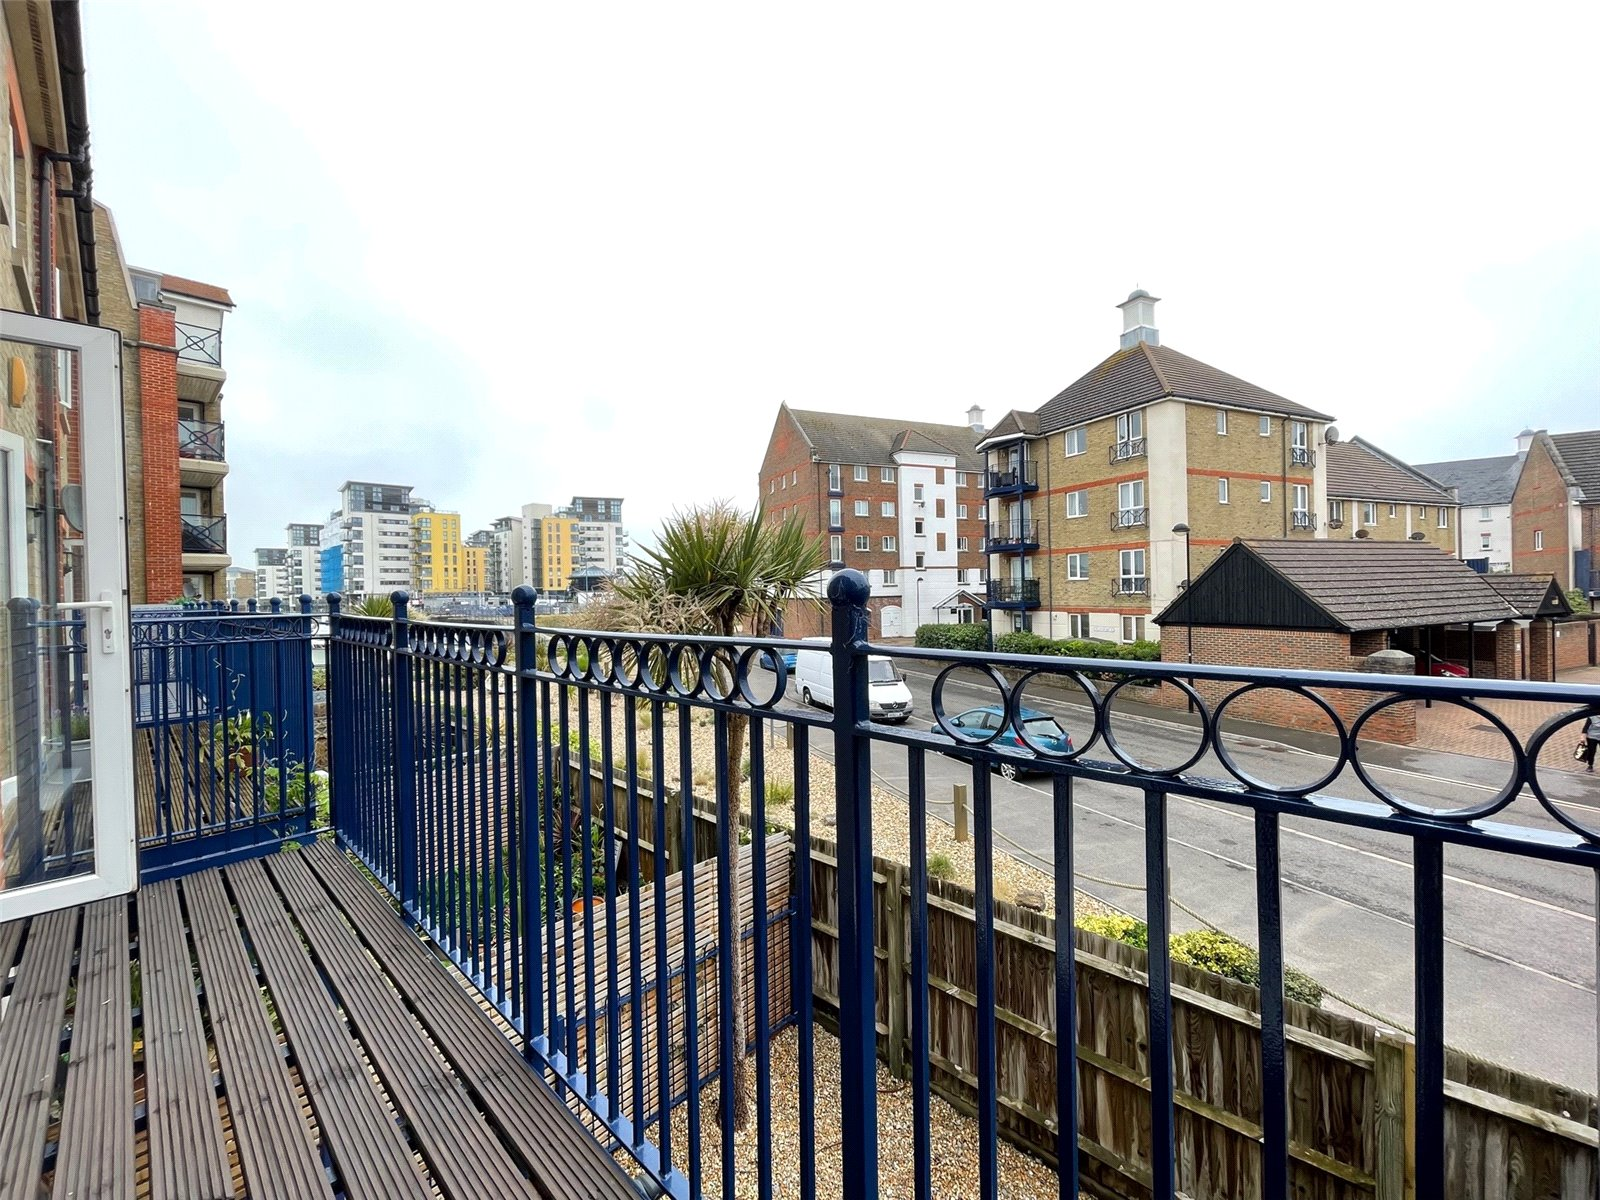 The Piazza, Sovereign Harbour South